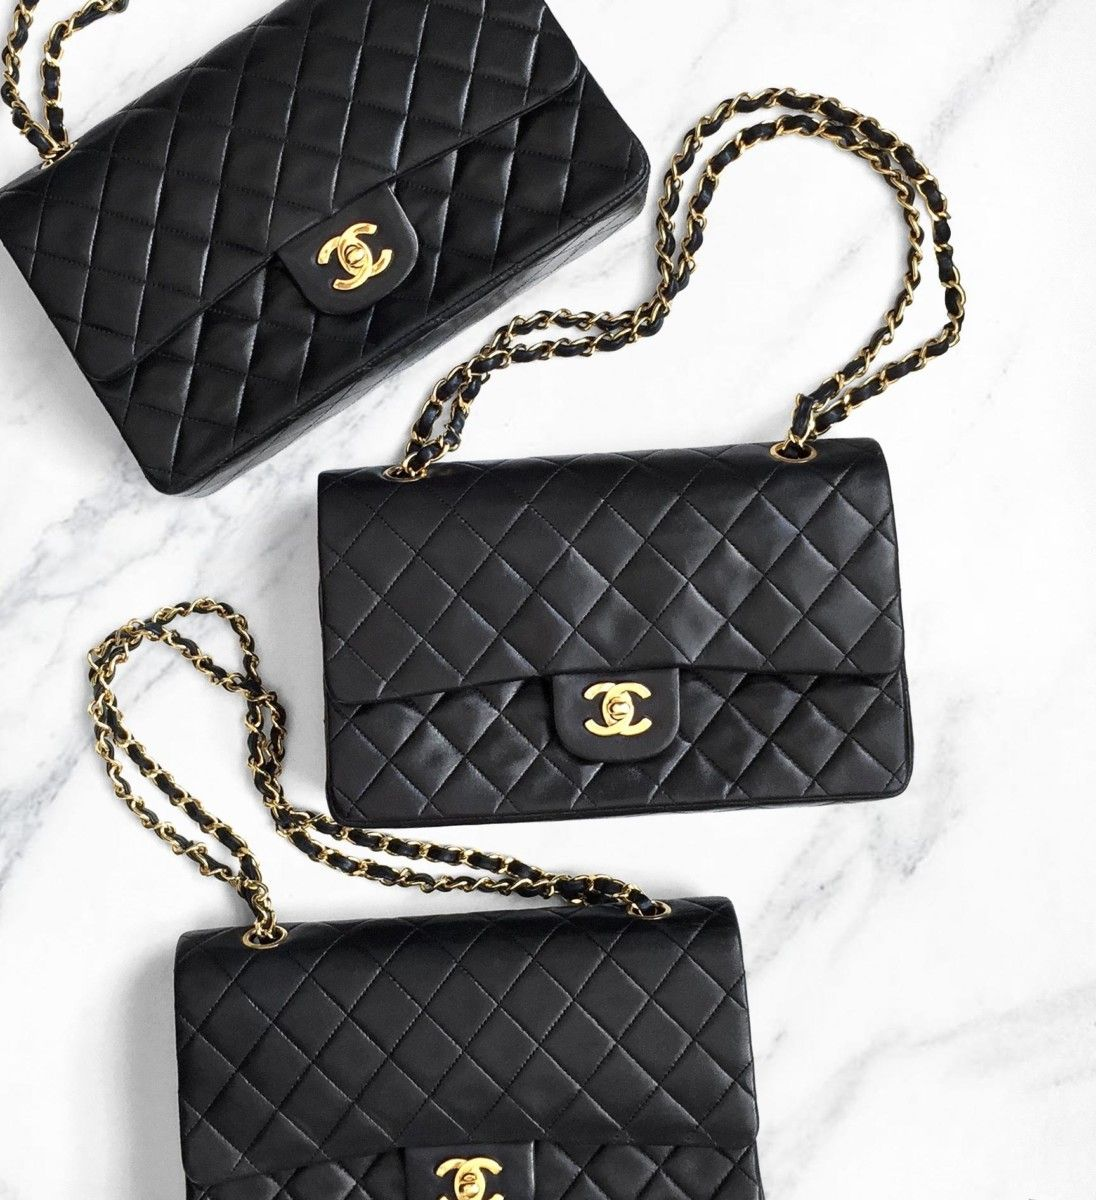 gucci bags canada. luxury consignment in canada, consignment, used handbags, chanel bag, gucci bags canada b